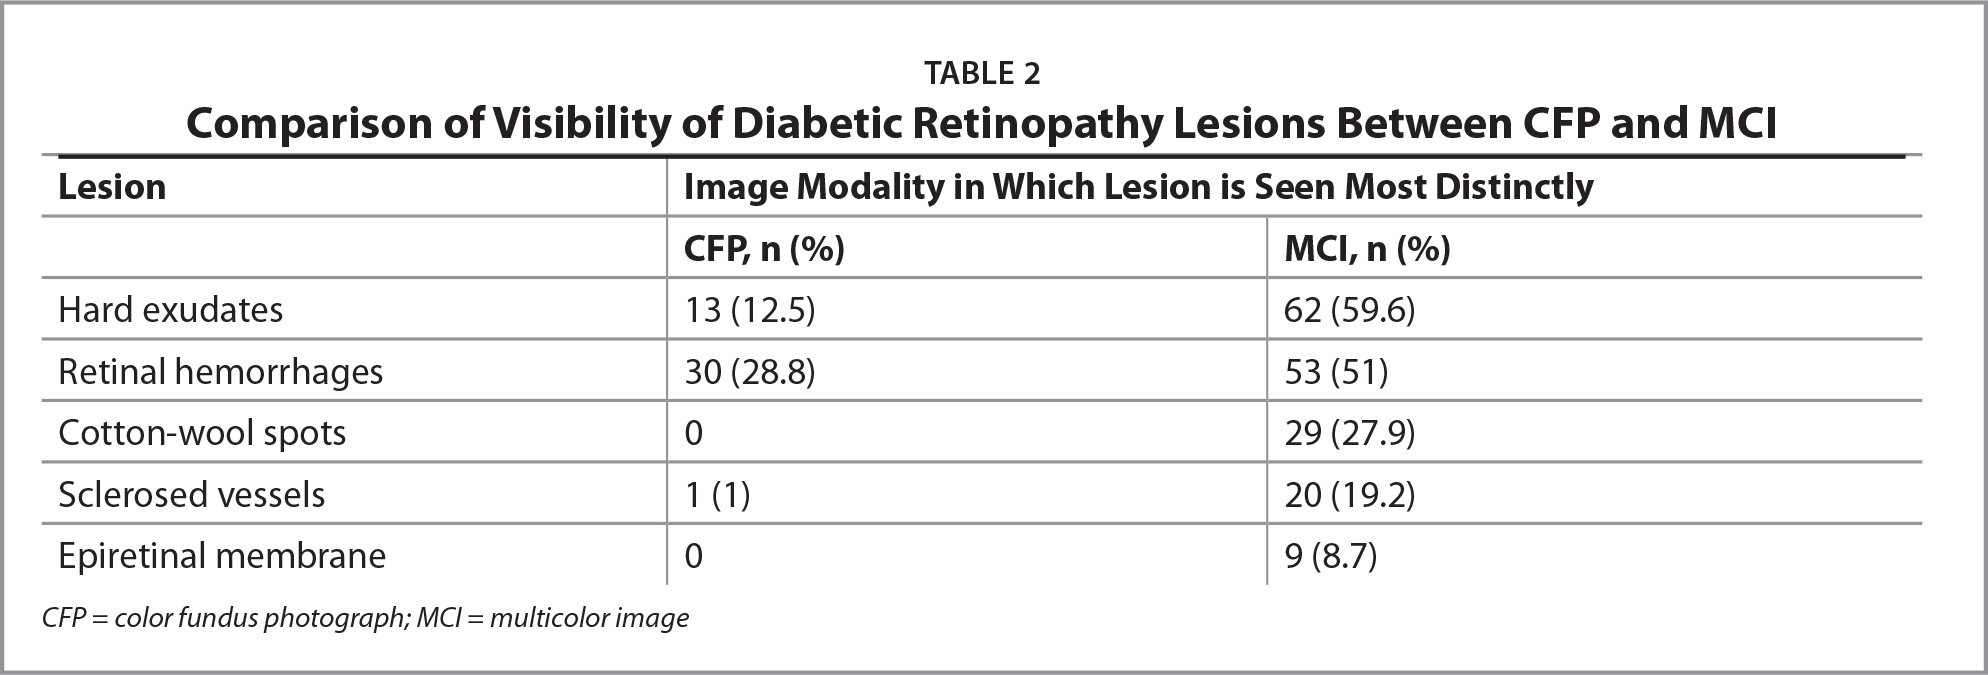 Comparison of Visibility of Diabetic Retinopathy Lesions Between CFP and MCI